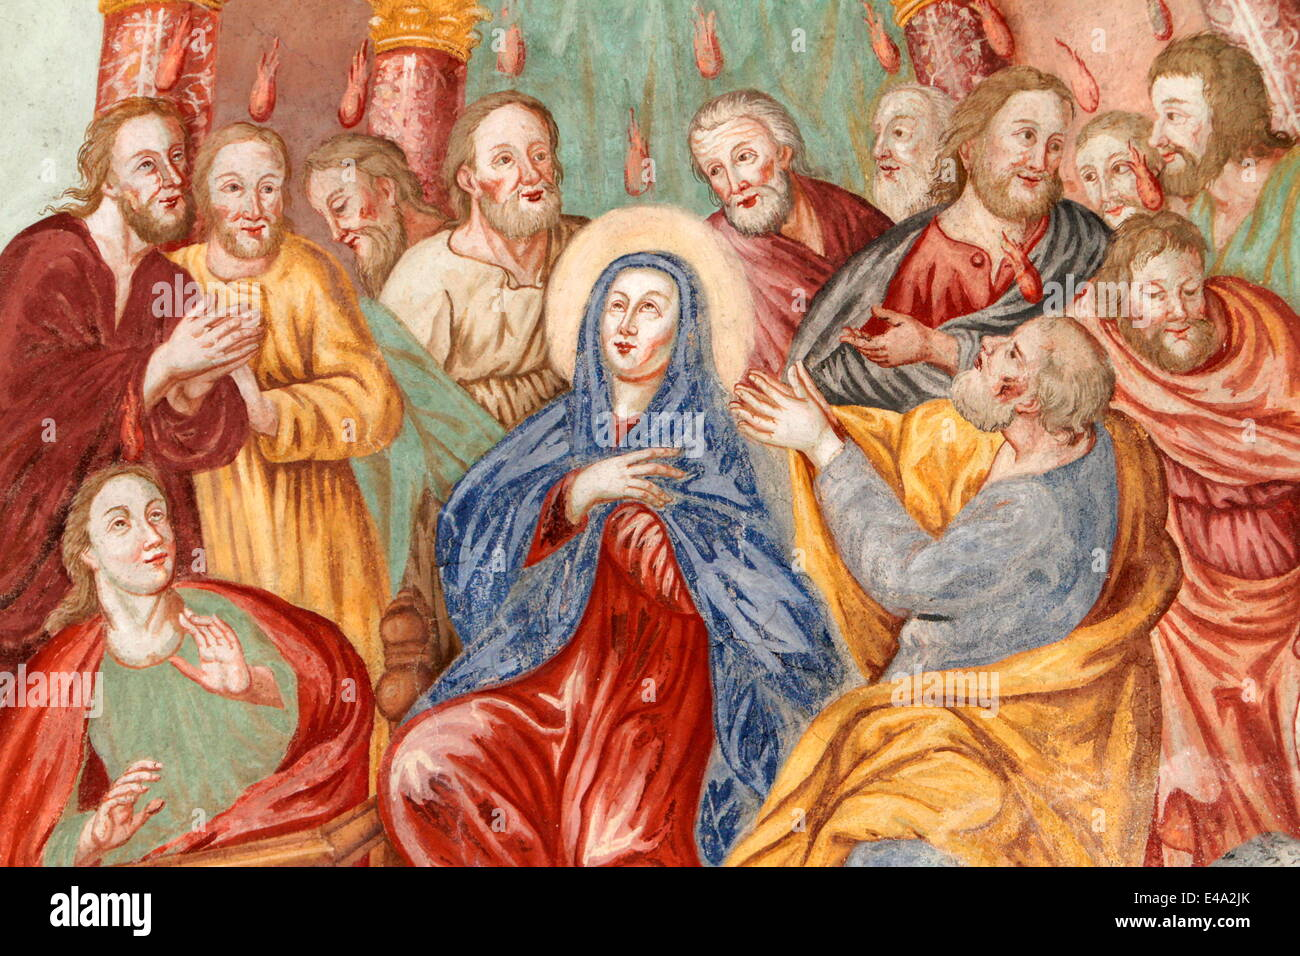 Descent of the Holy Spirit, Our Lady of the Assumption church, Cordon, Haute-Savoie, France, Europe - Stock Image